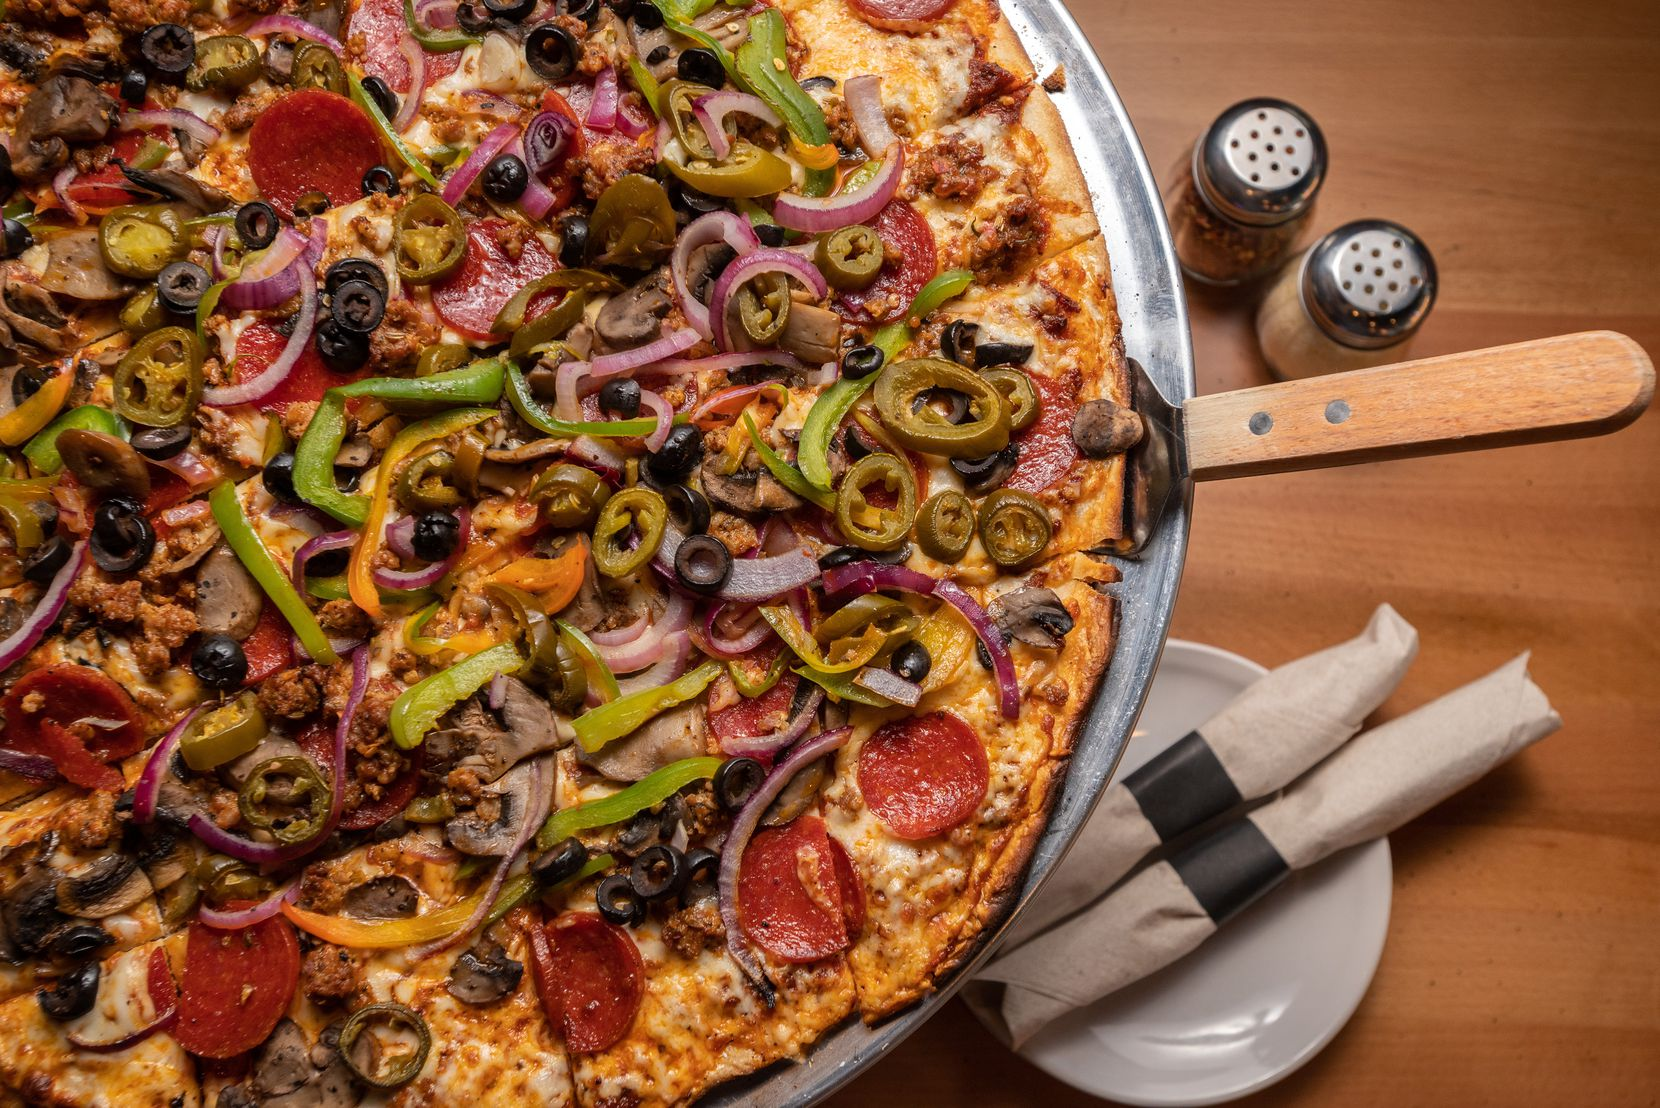 The SAT Deluxe pizza from Sylvan Avenue Tavern in West Dallas comes with marinara sauce, mozzarella, Jimmy's spicy sausage, pepperoni, black olives, green peppers, red onions, mushrooms and jalapeños.